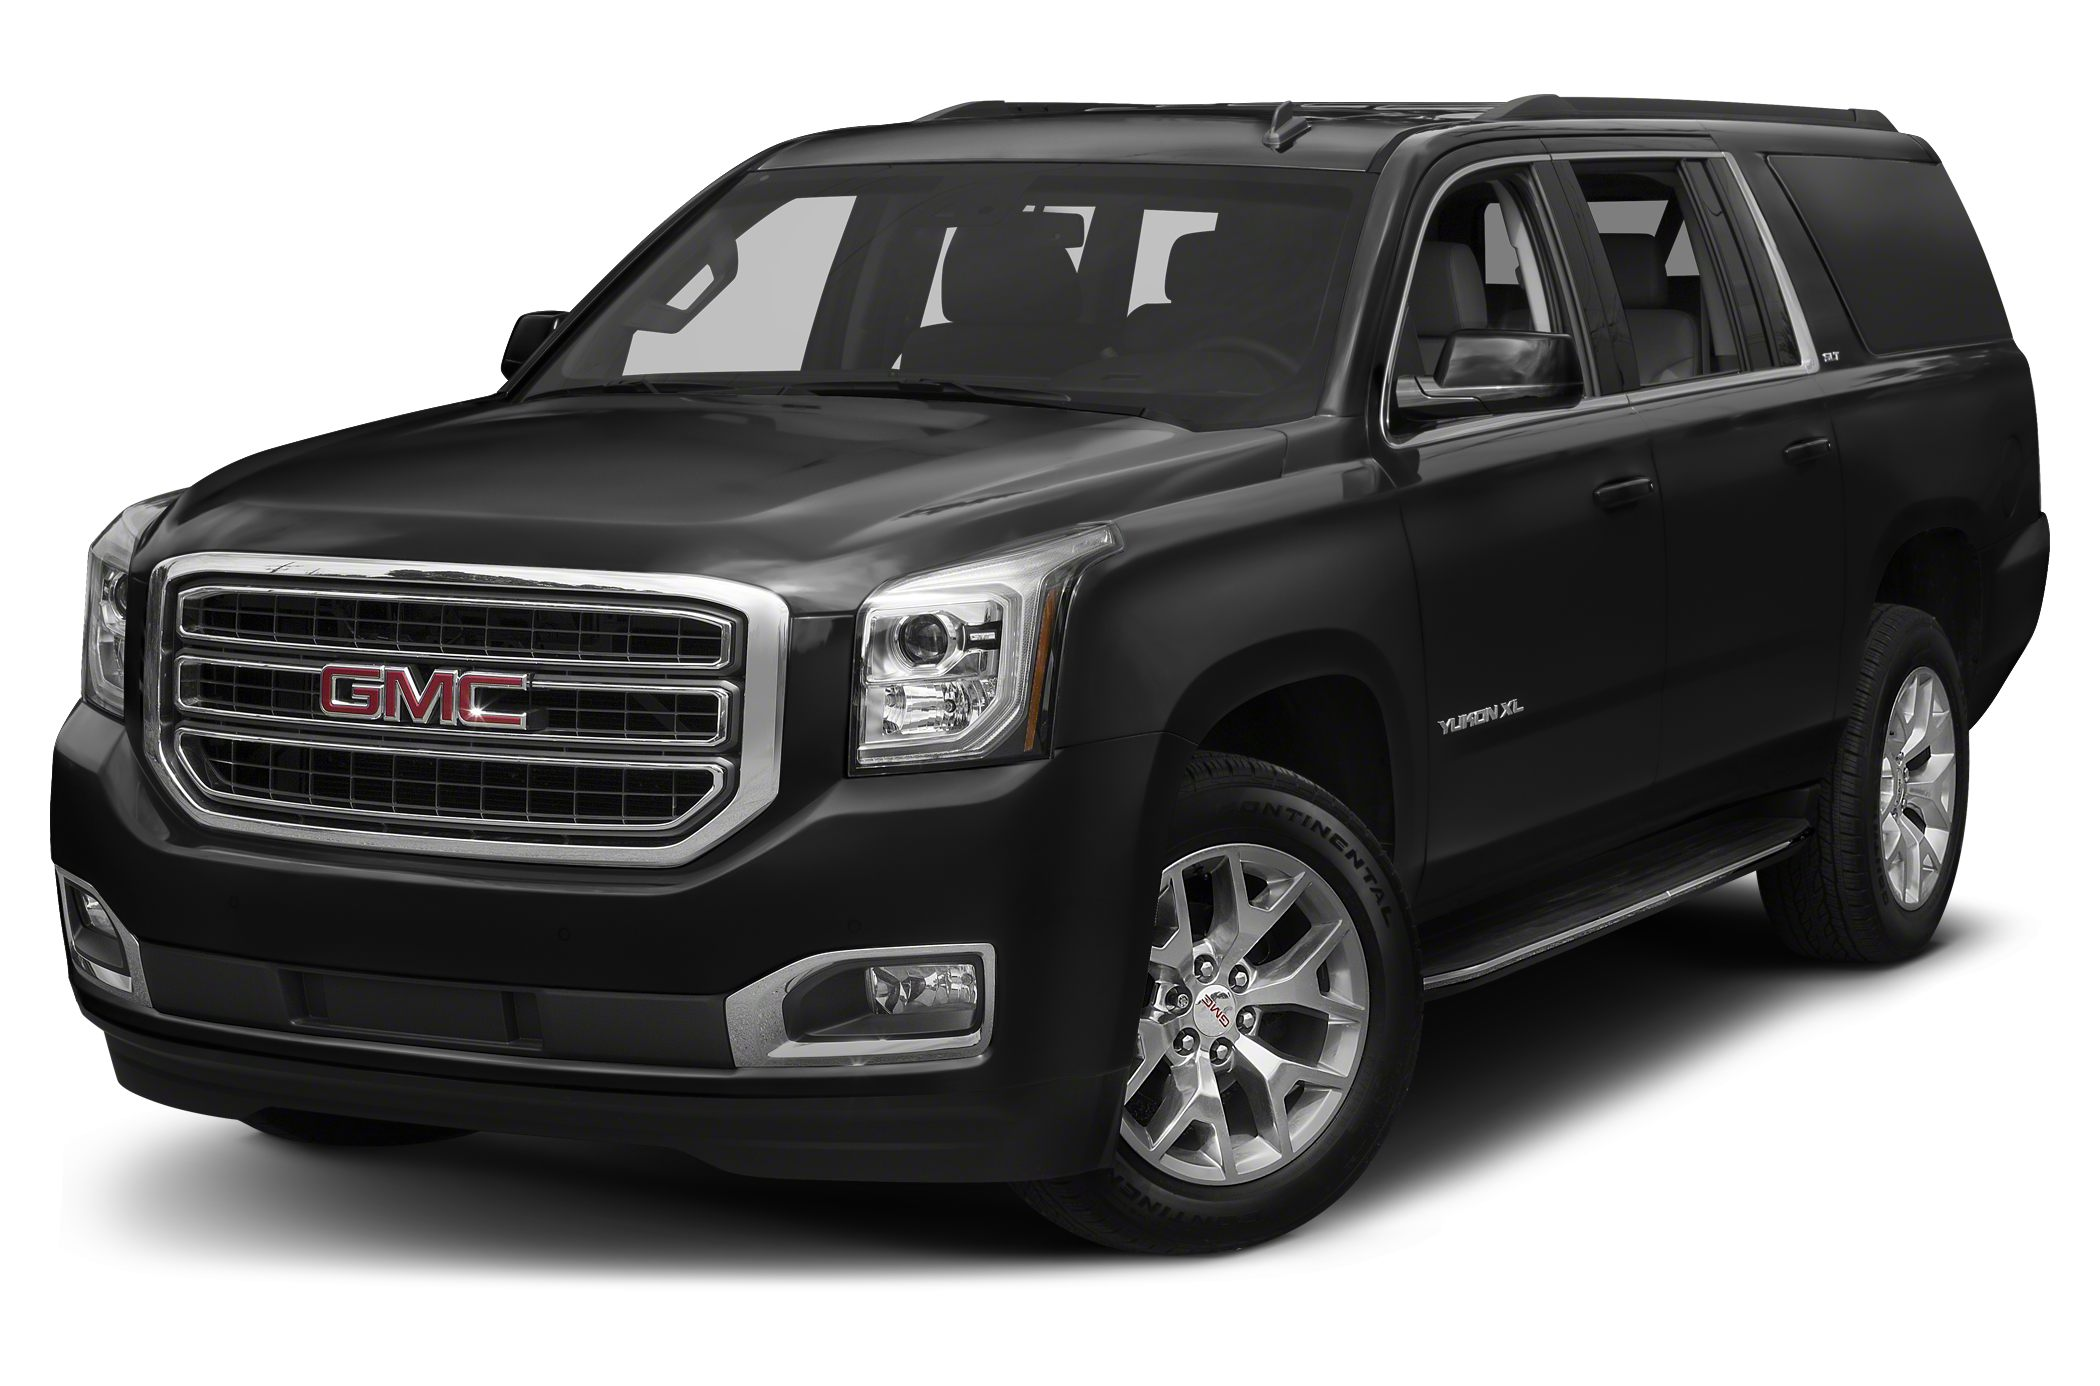 2015 GMC Yukon XL 1500 Denali SUV for sale in Castle Rock for $79,075 with 0 miles.